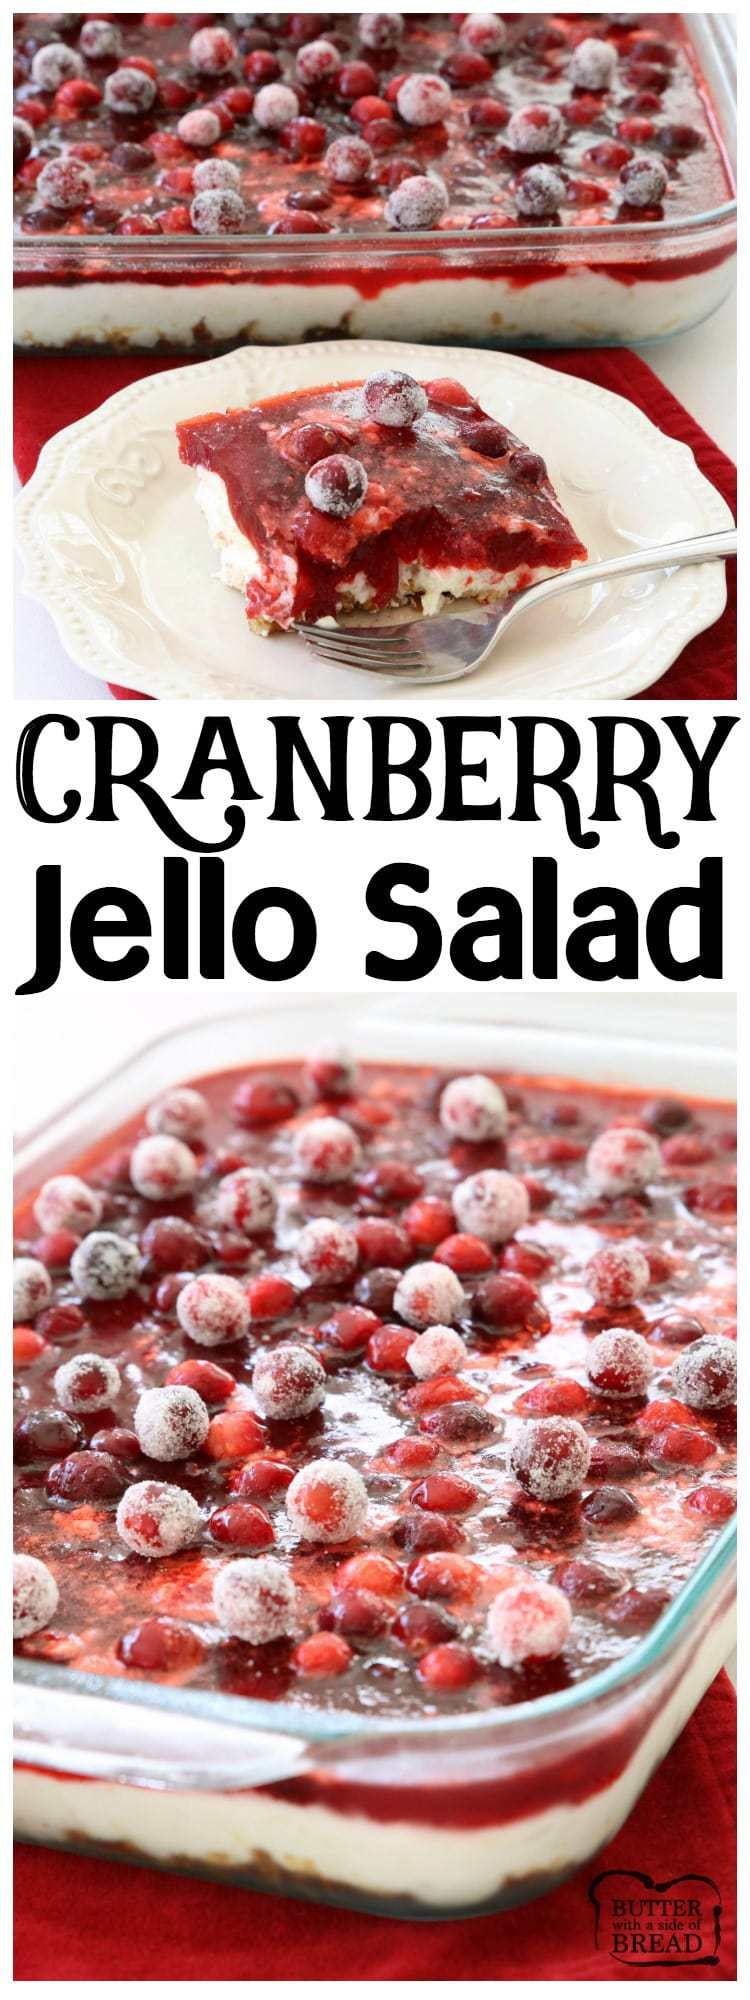 Cranberry Jello Salad made with 3 festive, delicious layers of pretzels, pudding, cranberries & Jello! Impressive, easy cranberry recipe to add to your holiday meal.